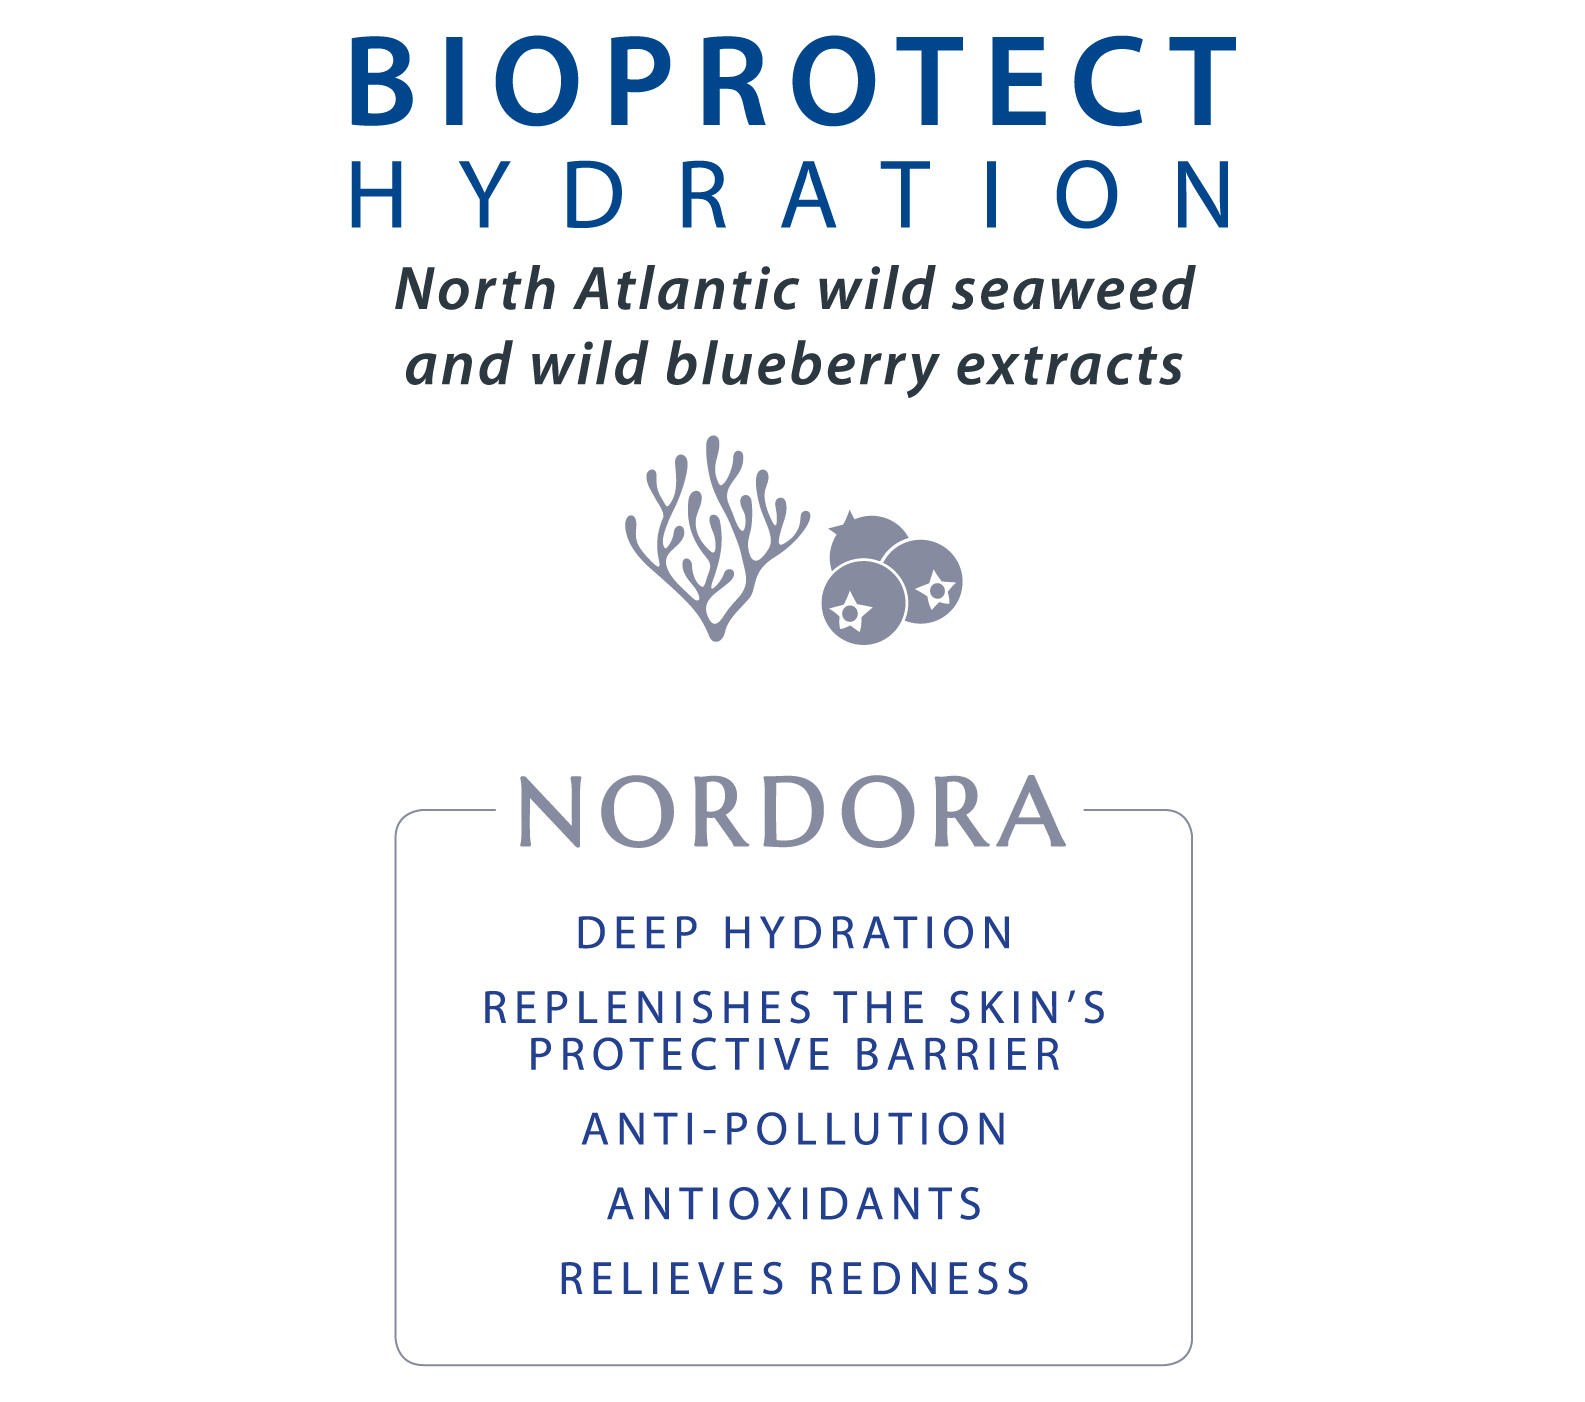 Nordora_BioProtect_Actions.jpg